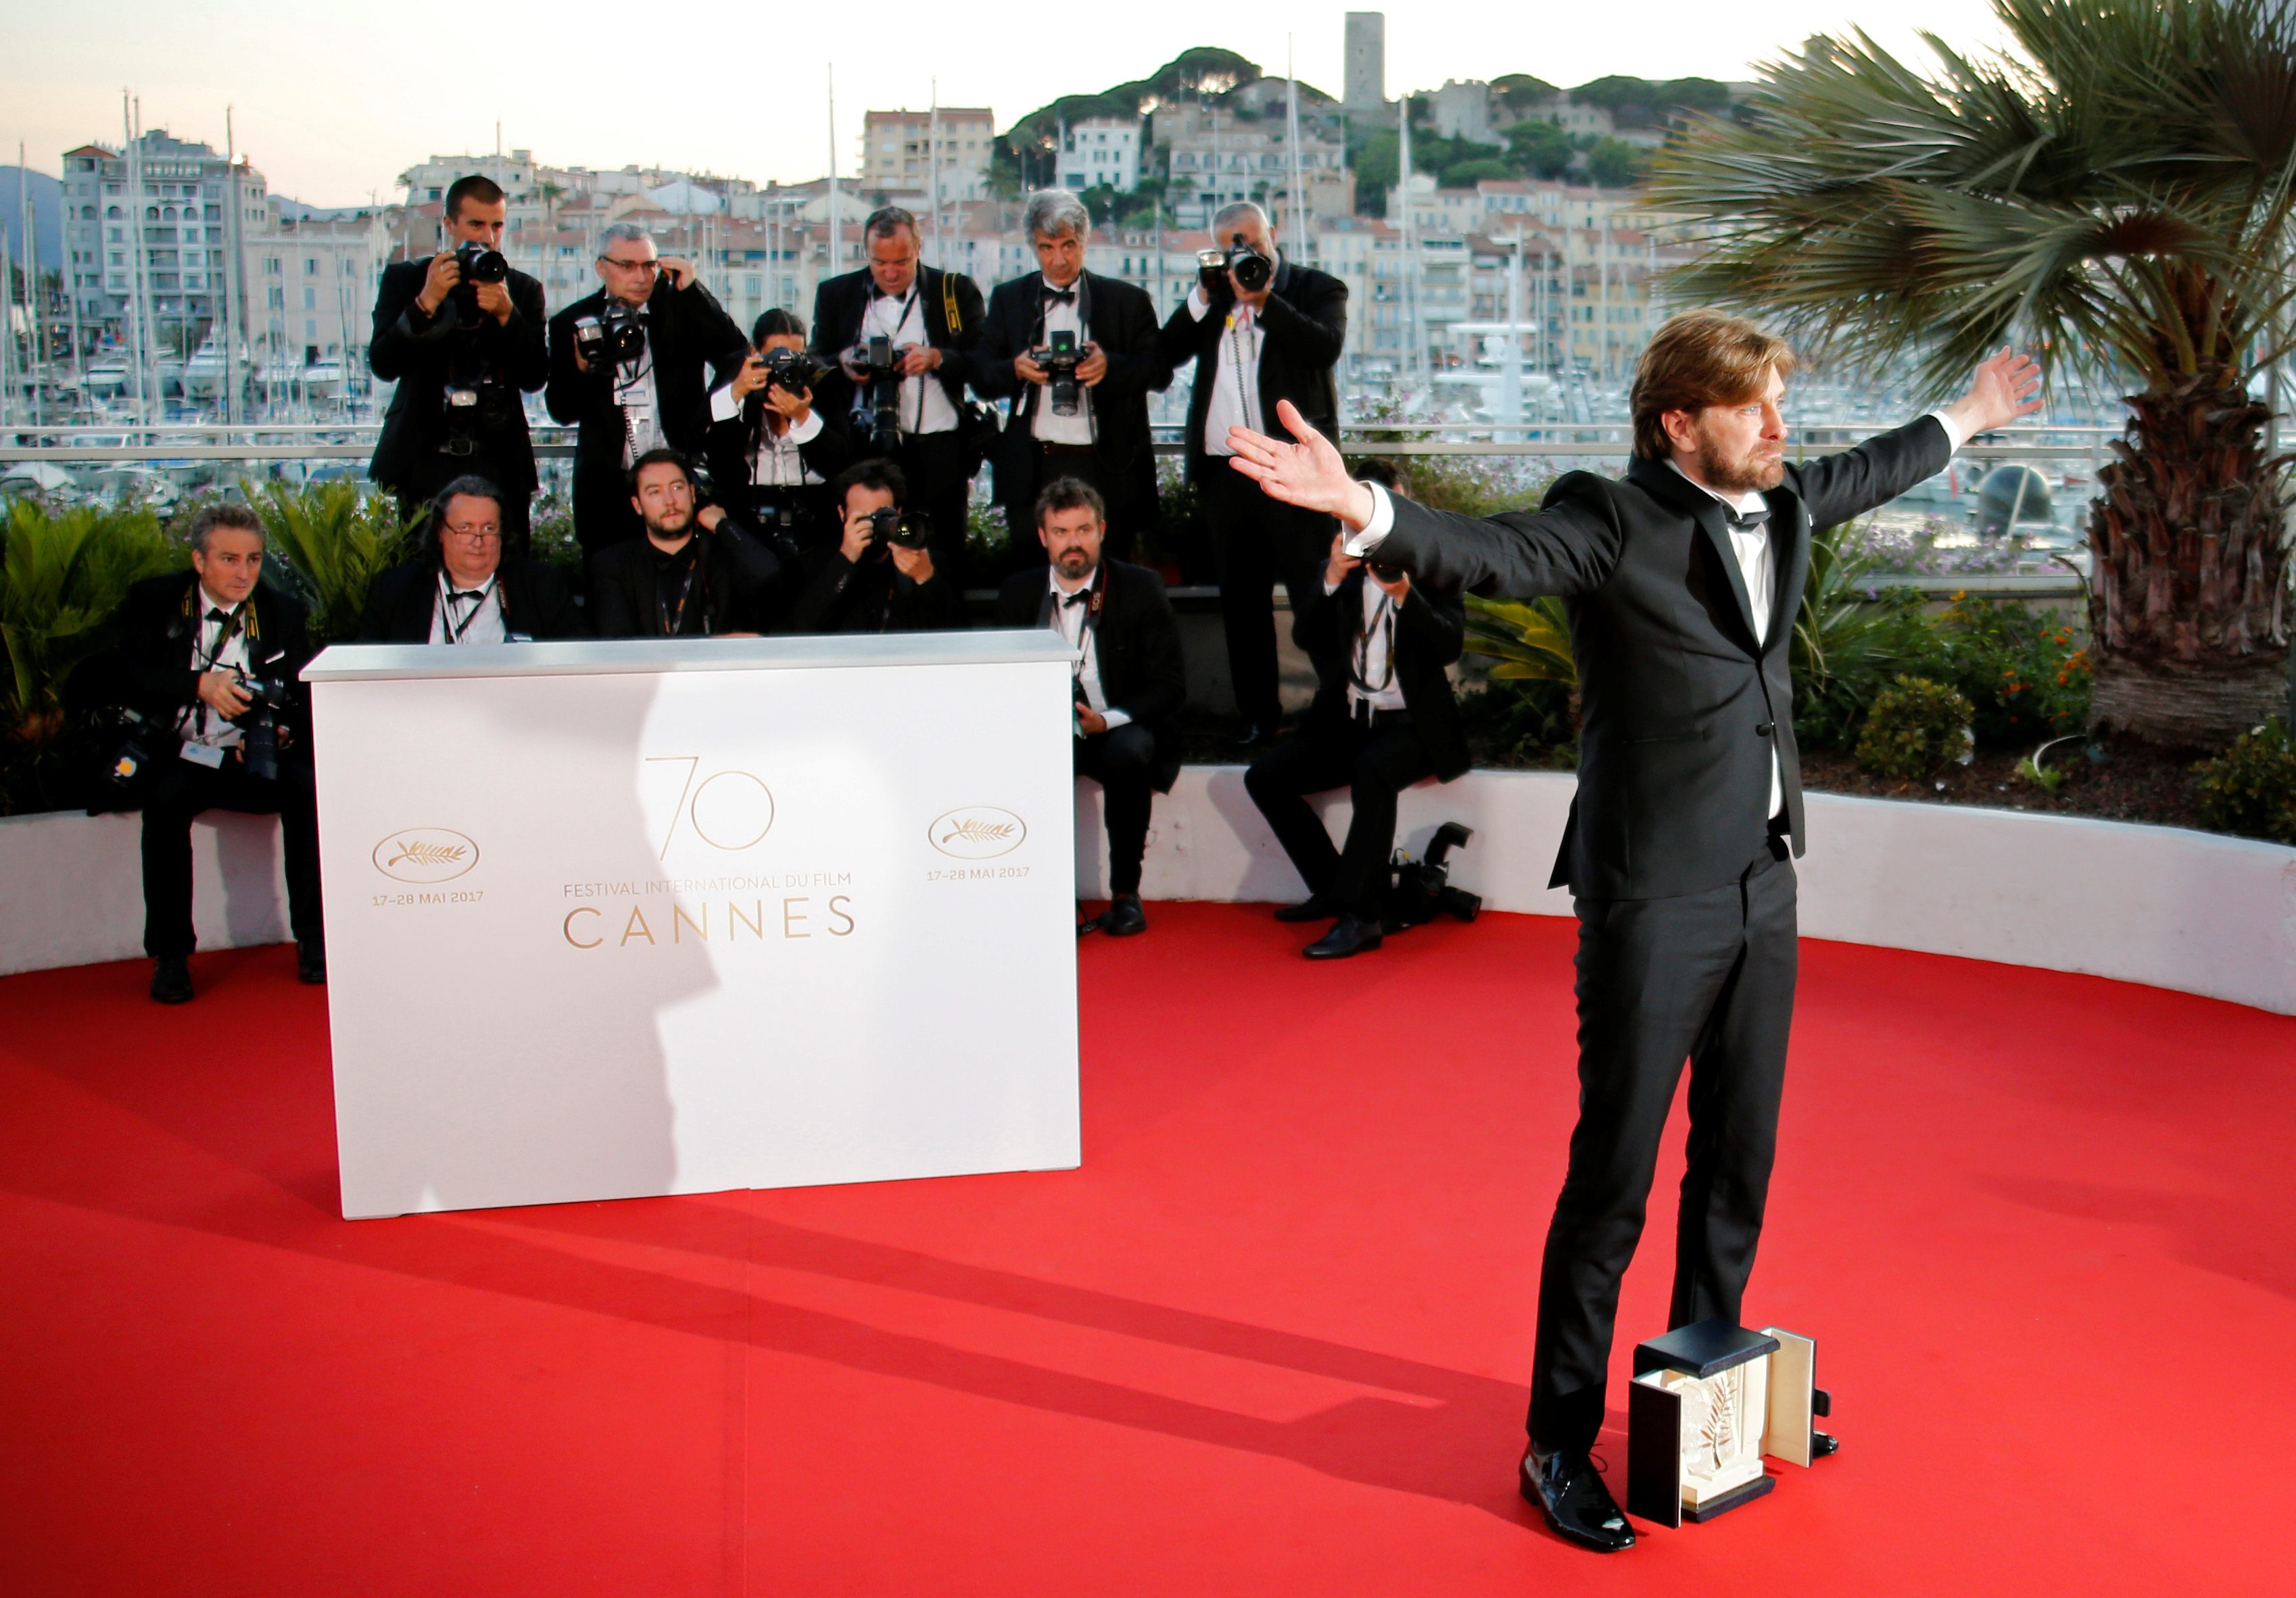 70th Cannes Film Festival Äi Photocall after Closing ceremony - Cannes, France. 28/05/2017. irector Ruben Ostlund , Palme d'Or award winner for his film